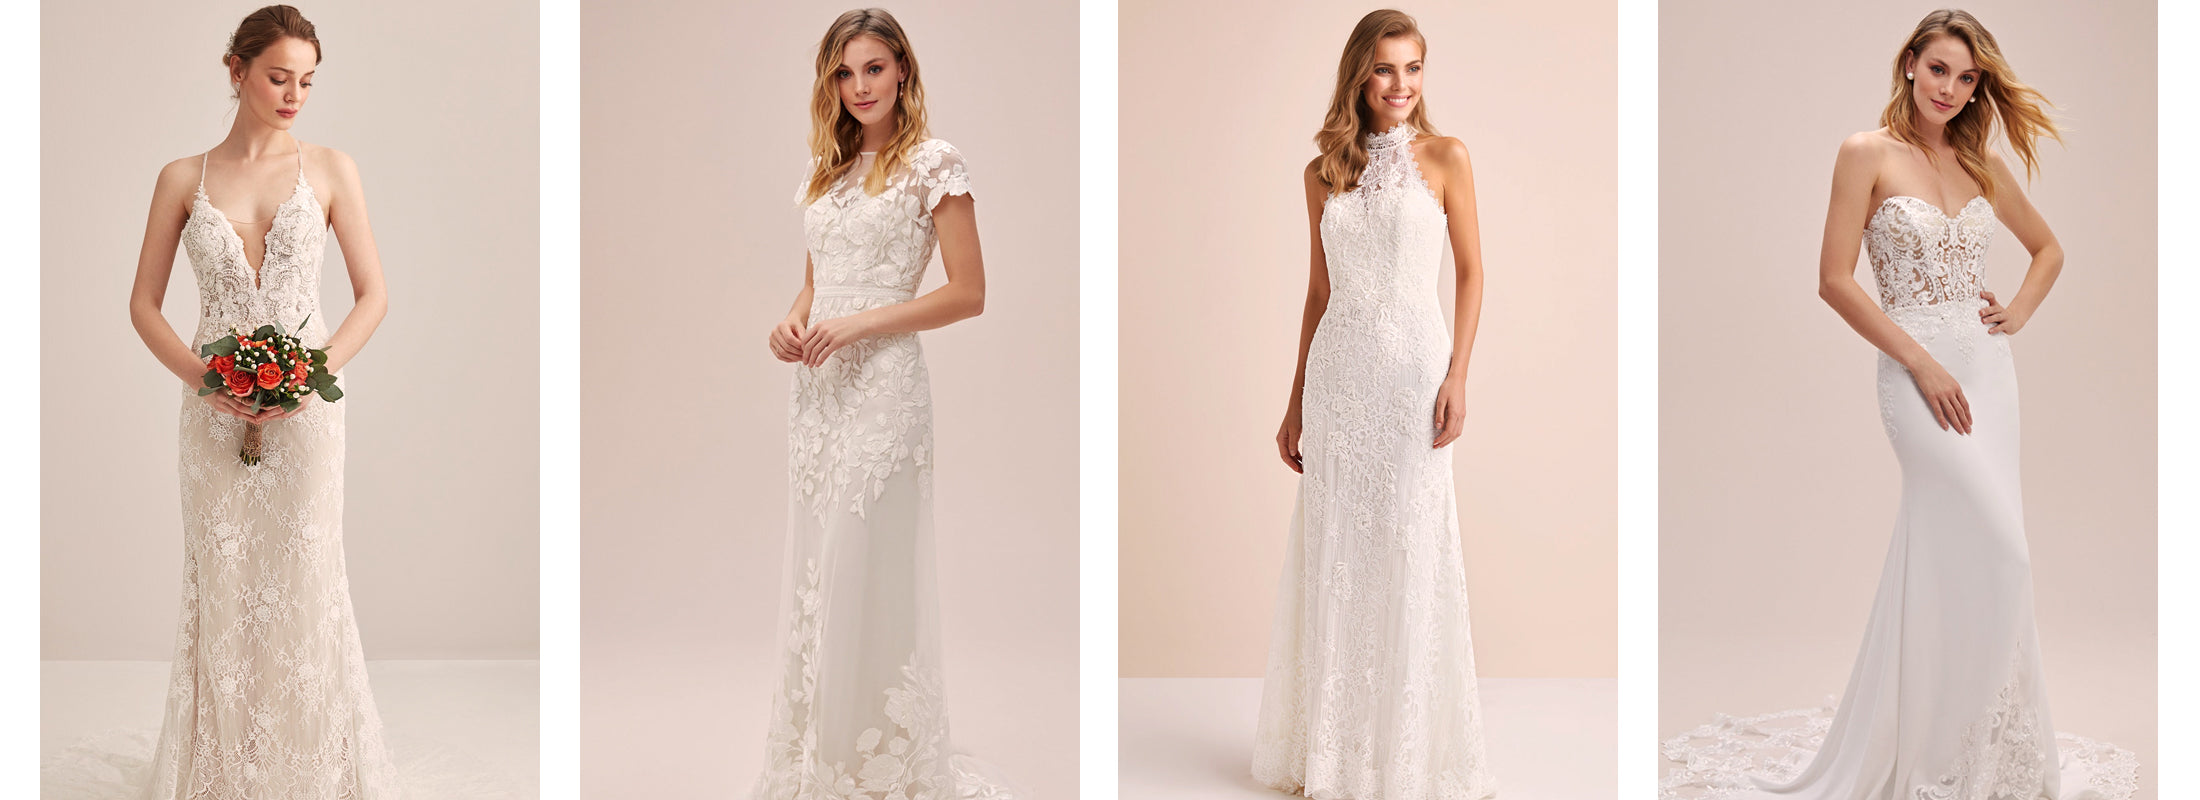 Oleg Cassini Sheath wedding dresses - Finding the perfect dress